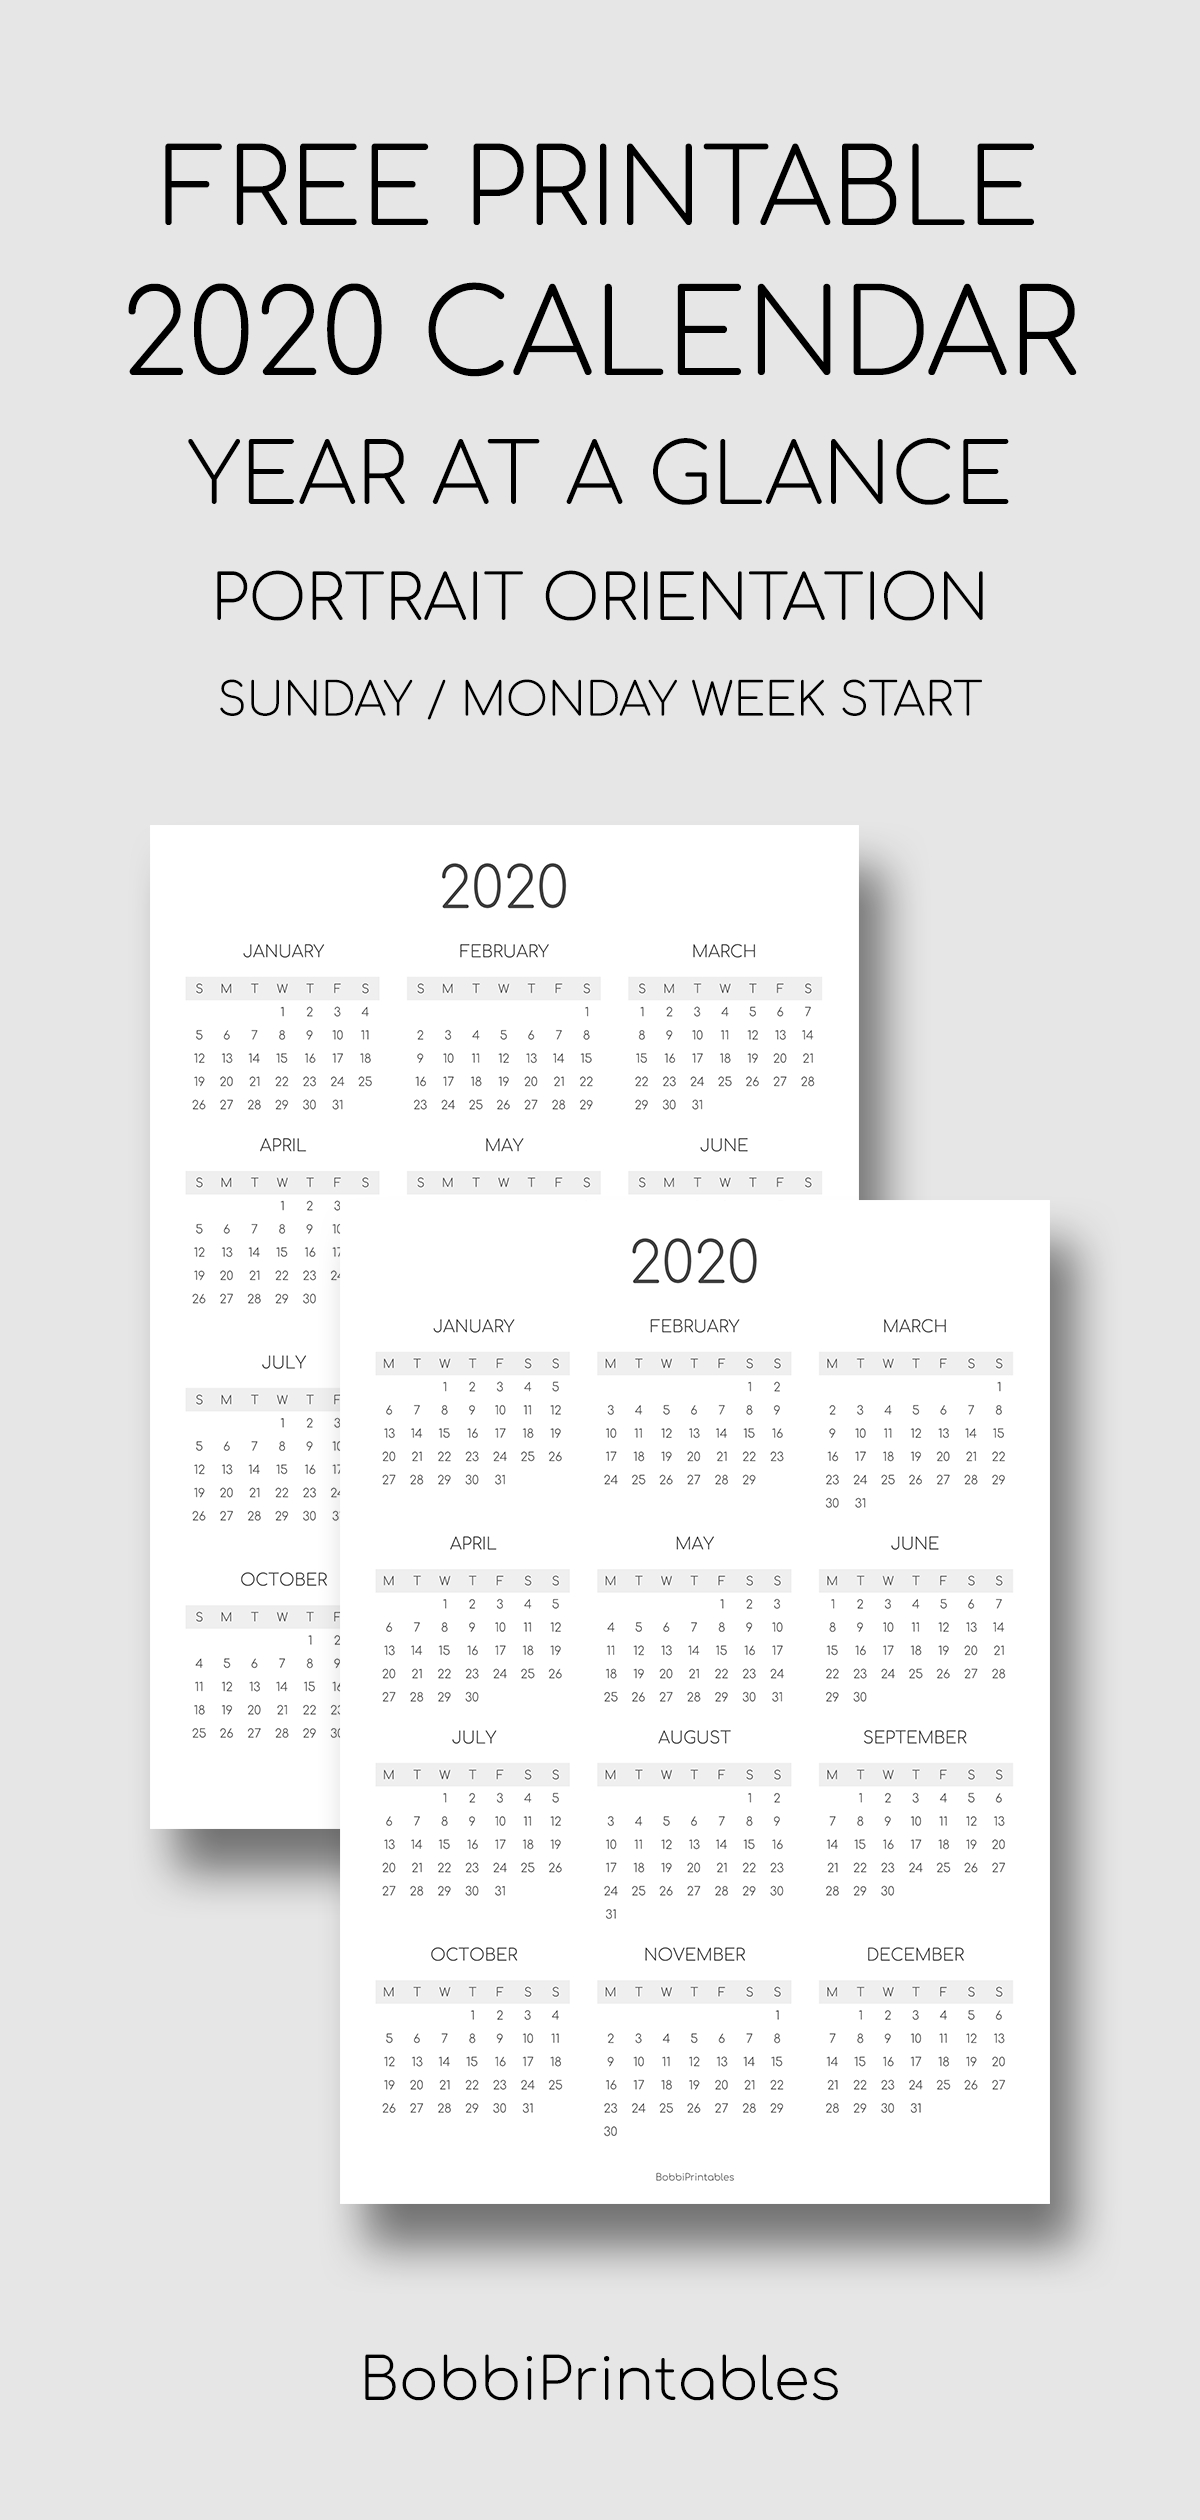 Printable 2020 Year At A Glance Calendar - Portrait throughout Free 2020 Year At A Glance Calendars